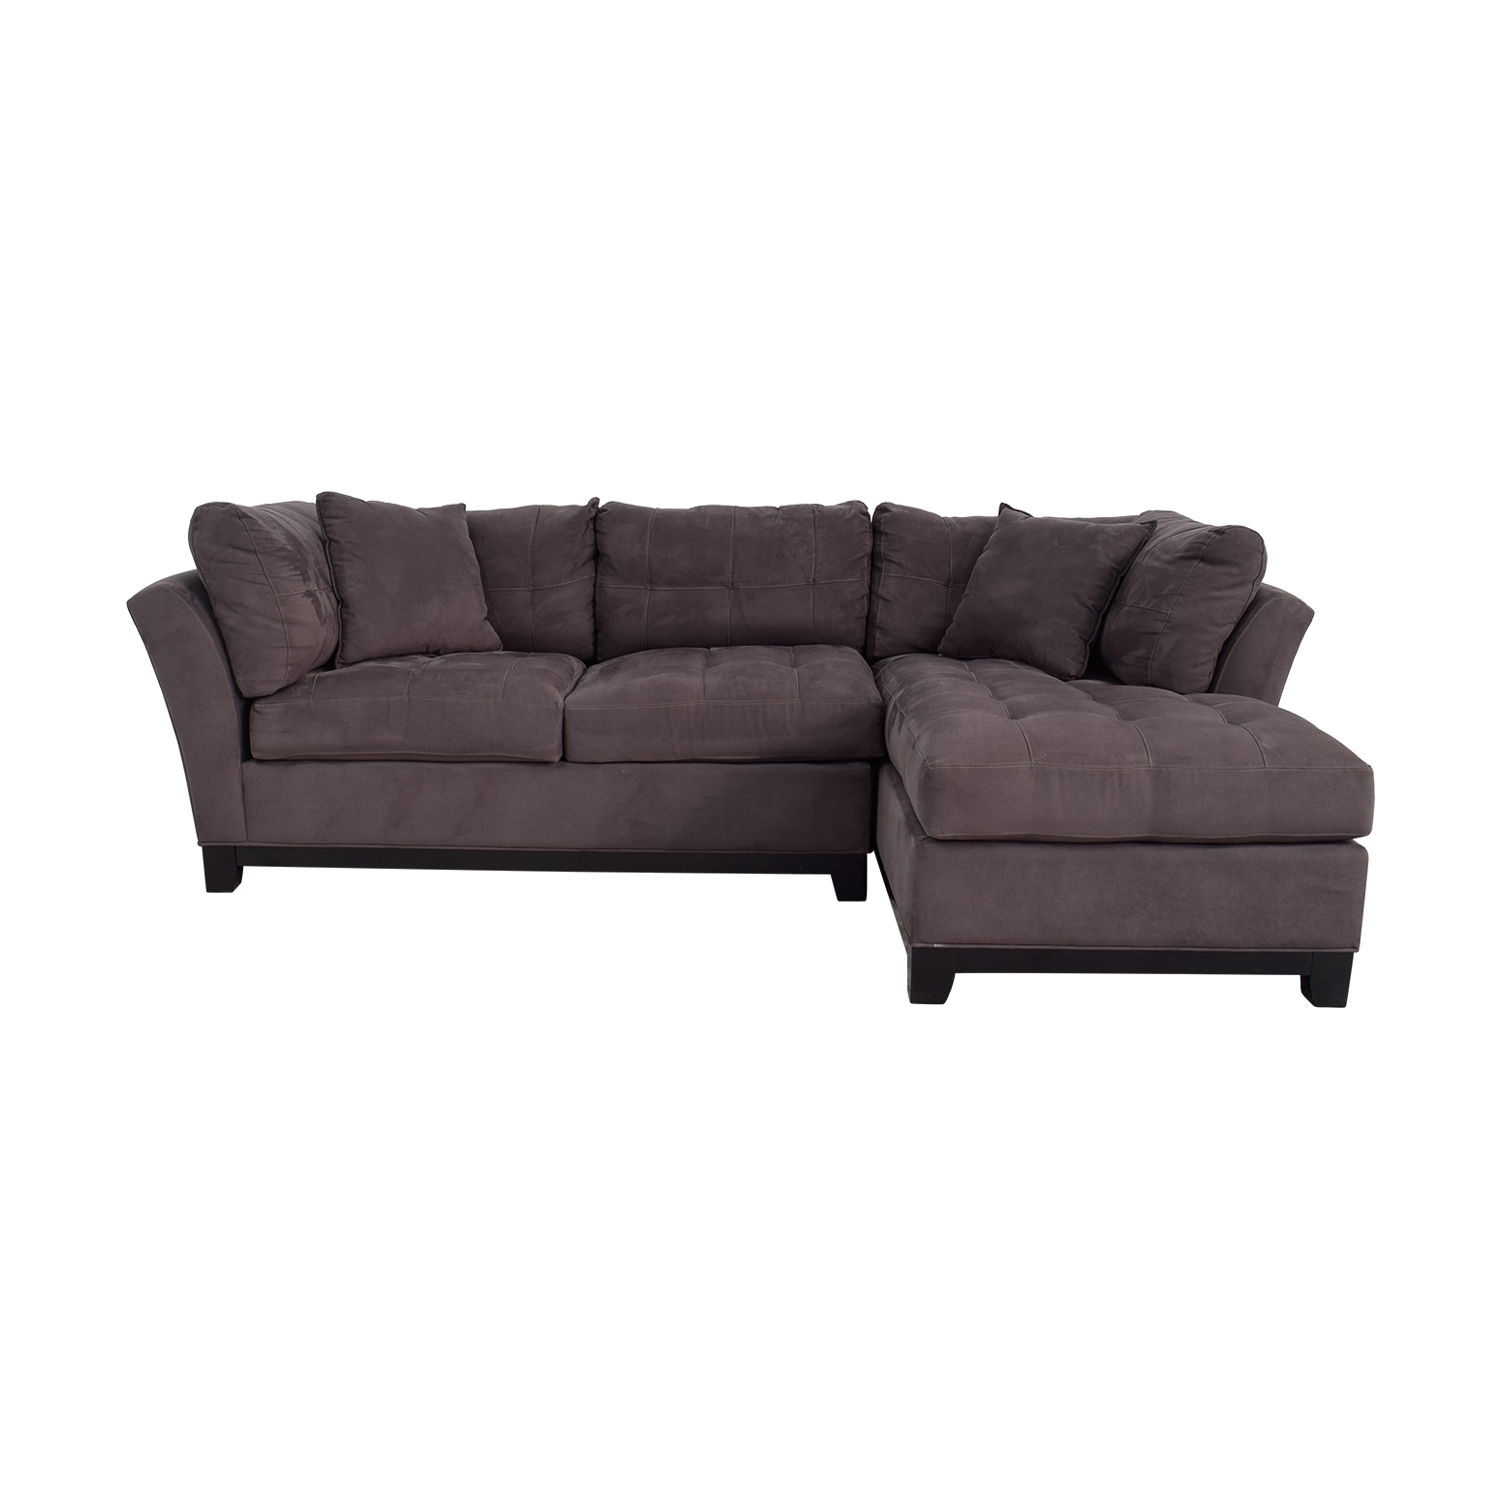 [%64% Off – Raymour & Flanigan Raymour & Flanigan Cindy Crawford Within Well Known Sectional Sofas At Raymour And Flanigan|Sectional Sofas At Raymour And Flanigan For Preferred 64% Off – Raymour & Flanigan Raymour & Flanigan Cindy Crawford|Widely Used Sectional Sofas At Raymour And Flanigan With 64% Off – Raymour & Flanigan Raymour & Flanigan Cindy Crawford|Recent 64% Off – Raymour & Flanigan Raymour & Flanigan Cindy Crawford Inside Sectional Sofas At Raymour And Flanigan%] (View 3 of 20)